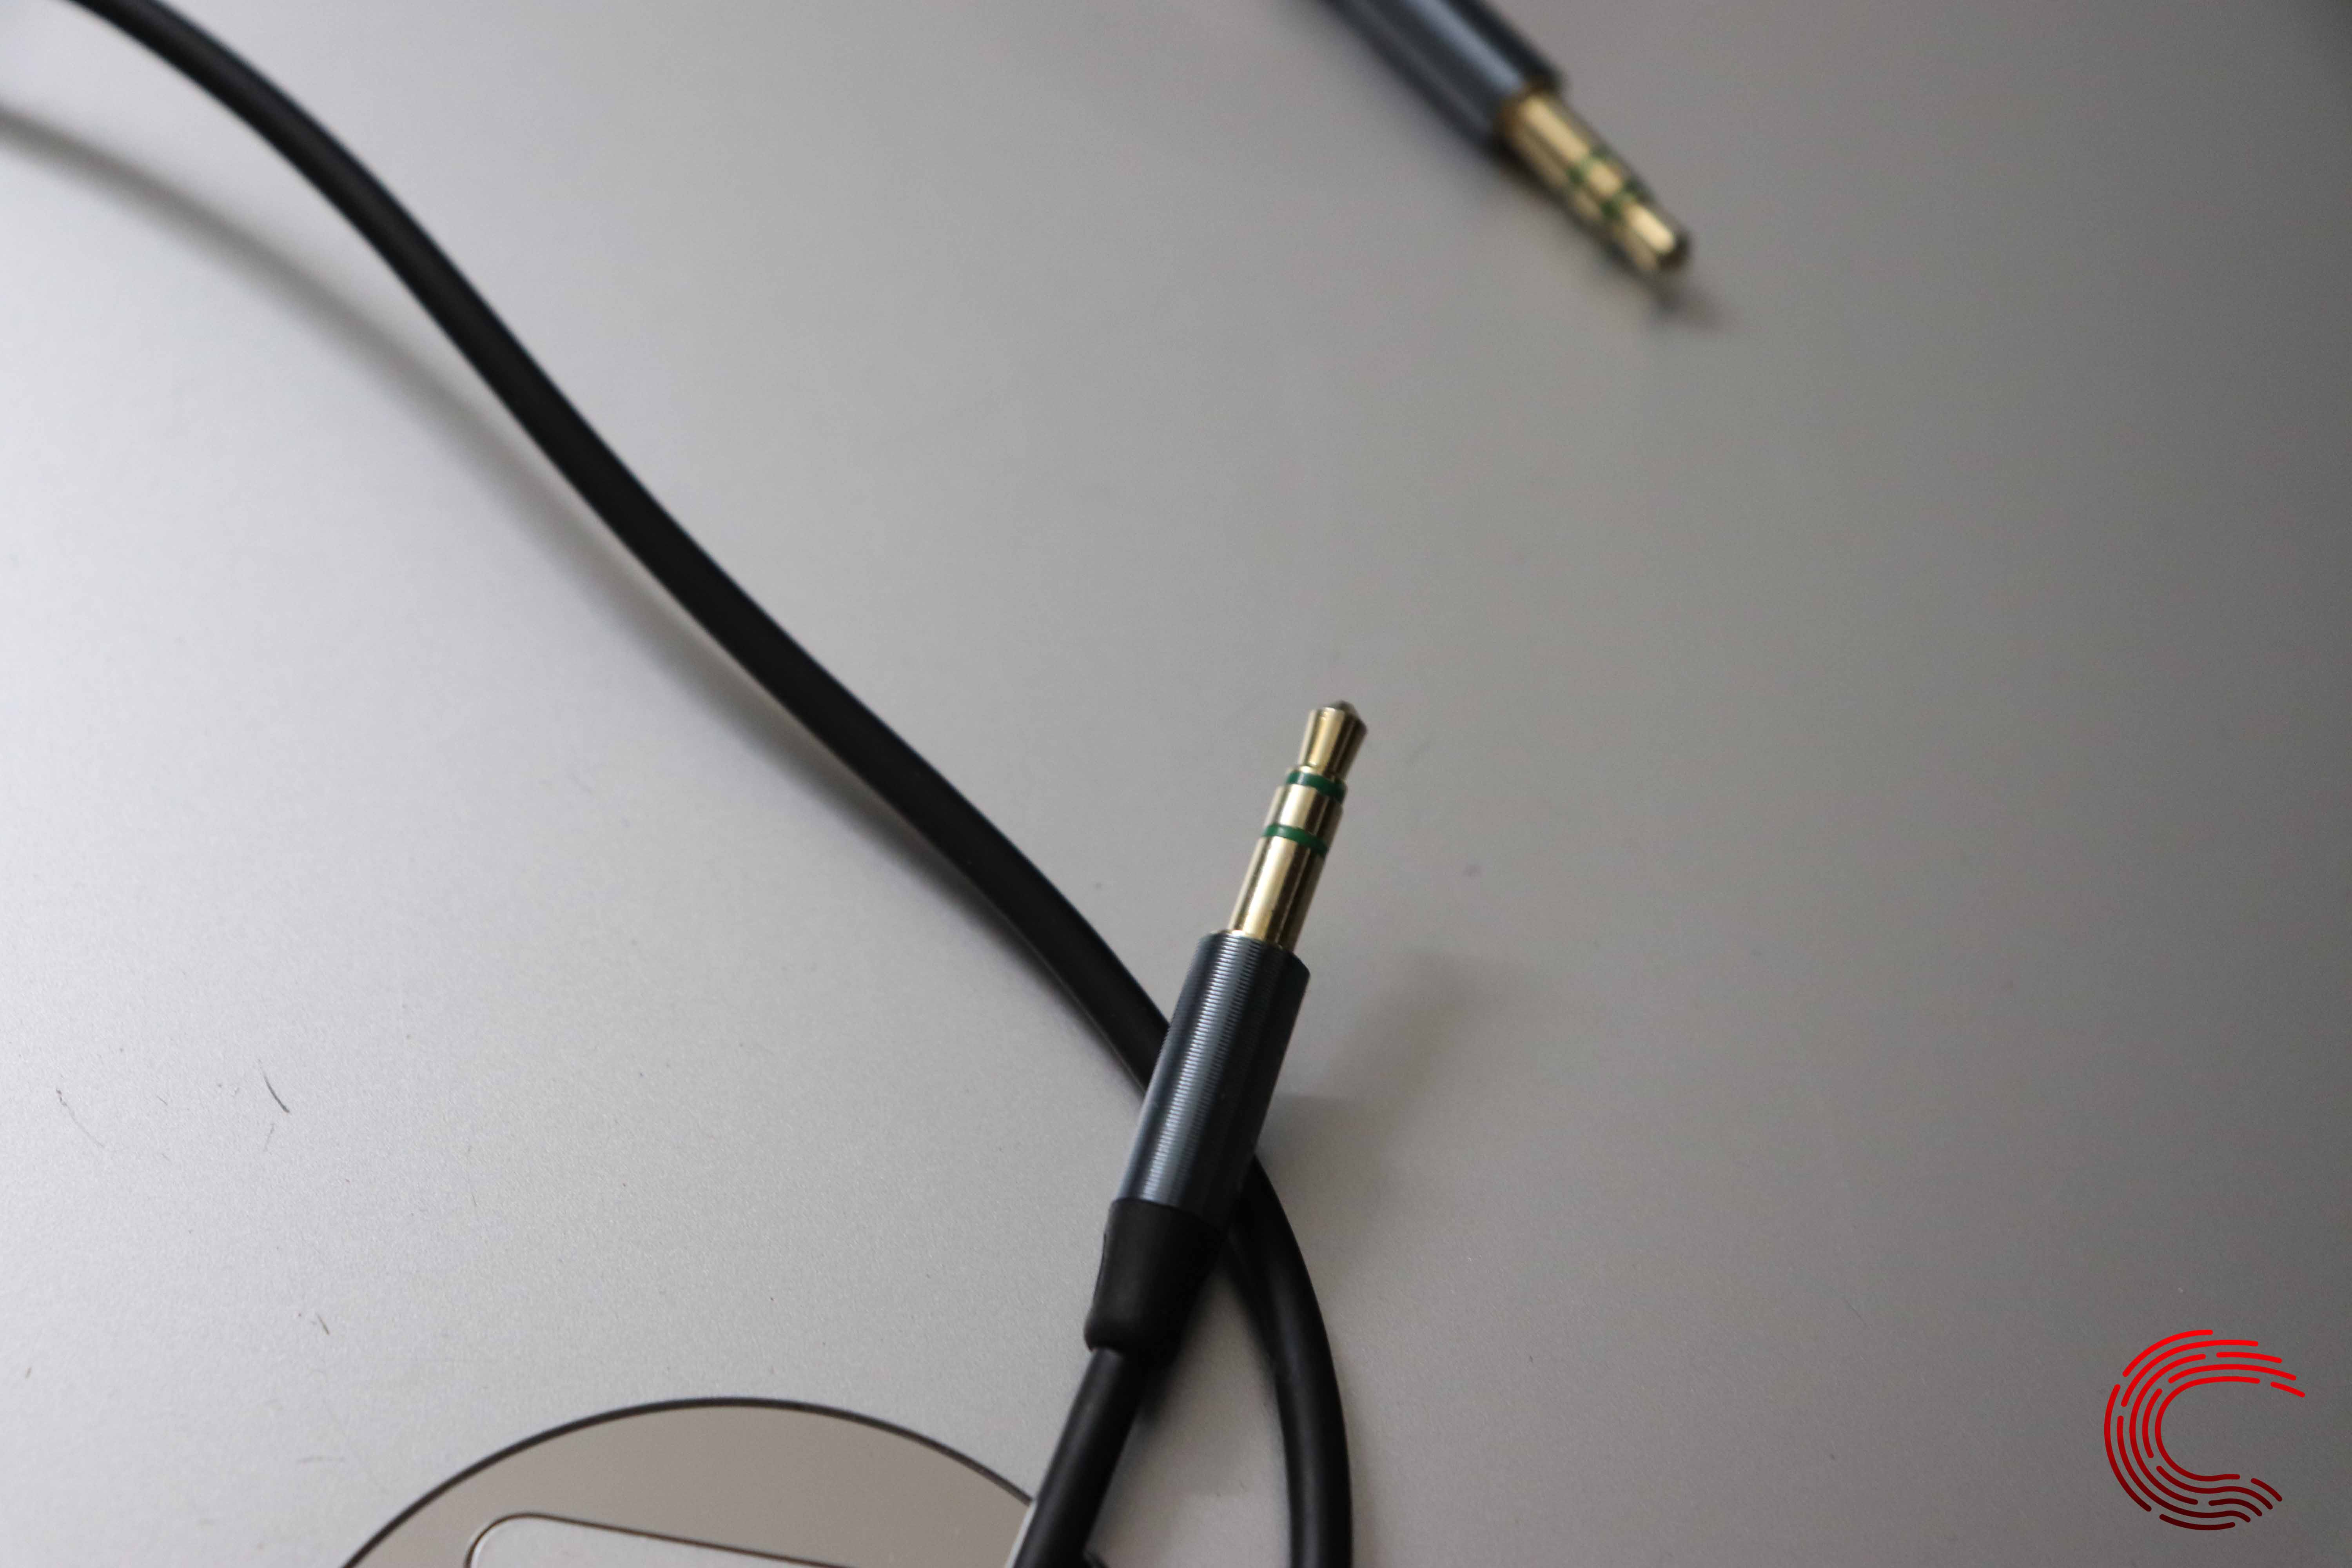 How length, thickness and connectors can affect cable performance